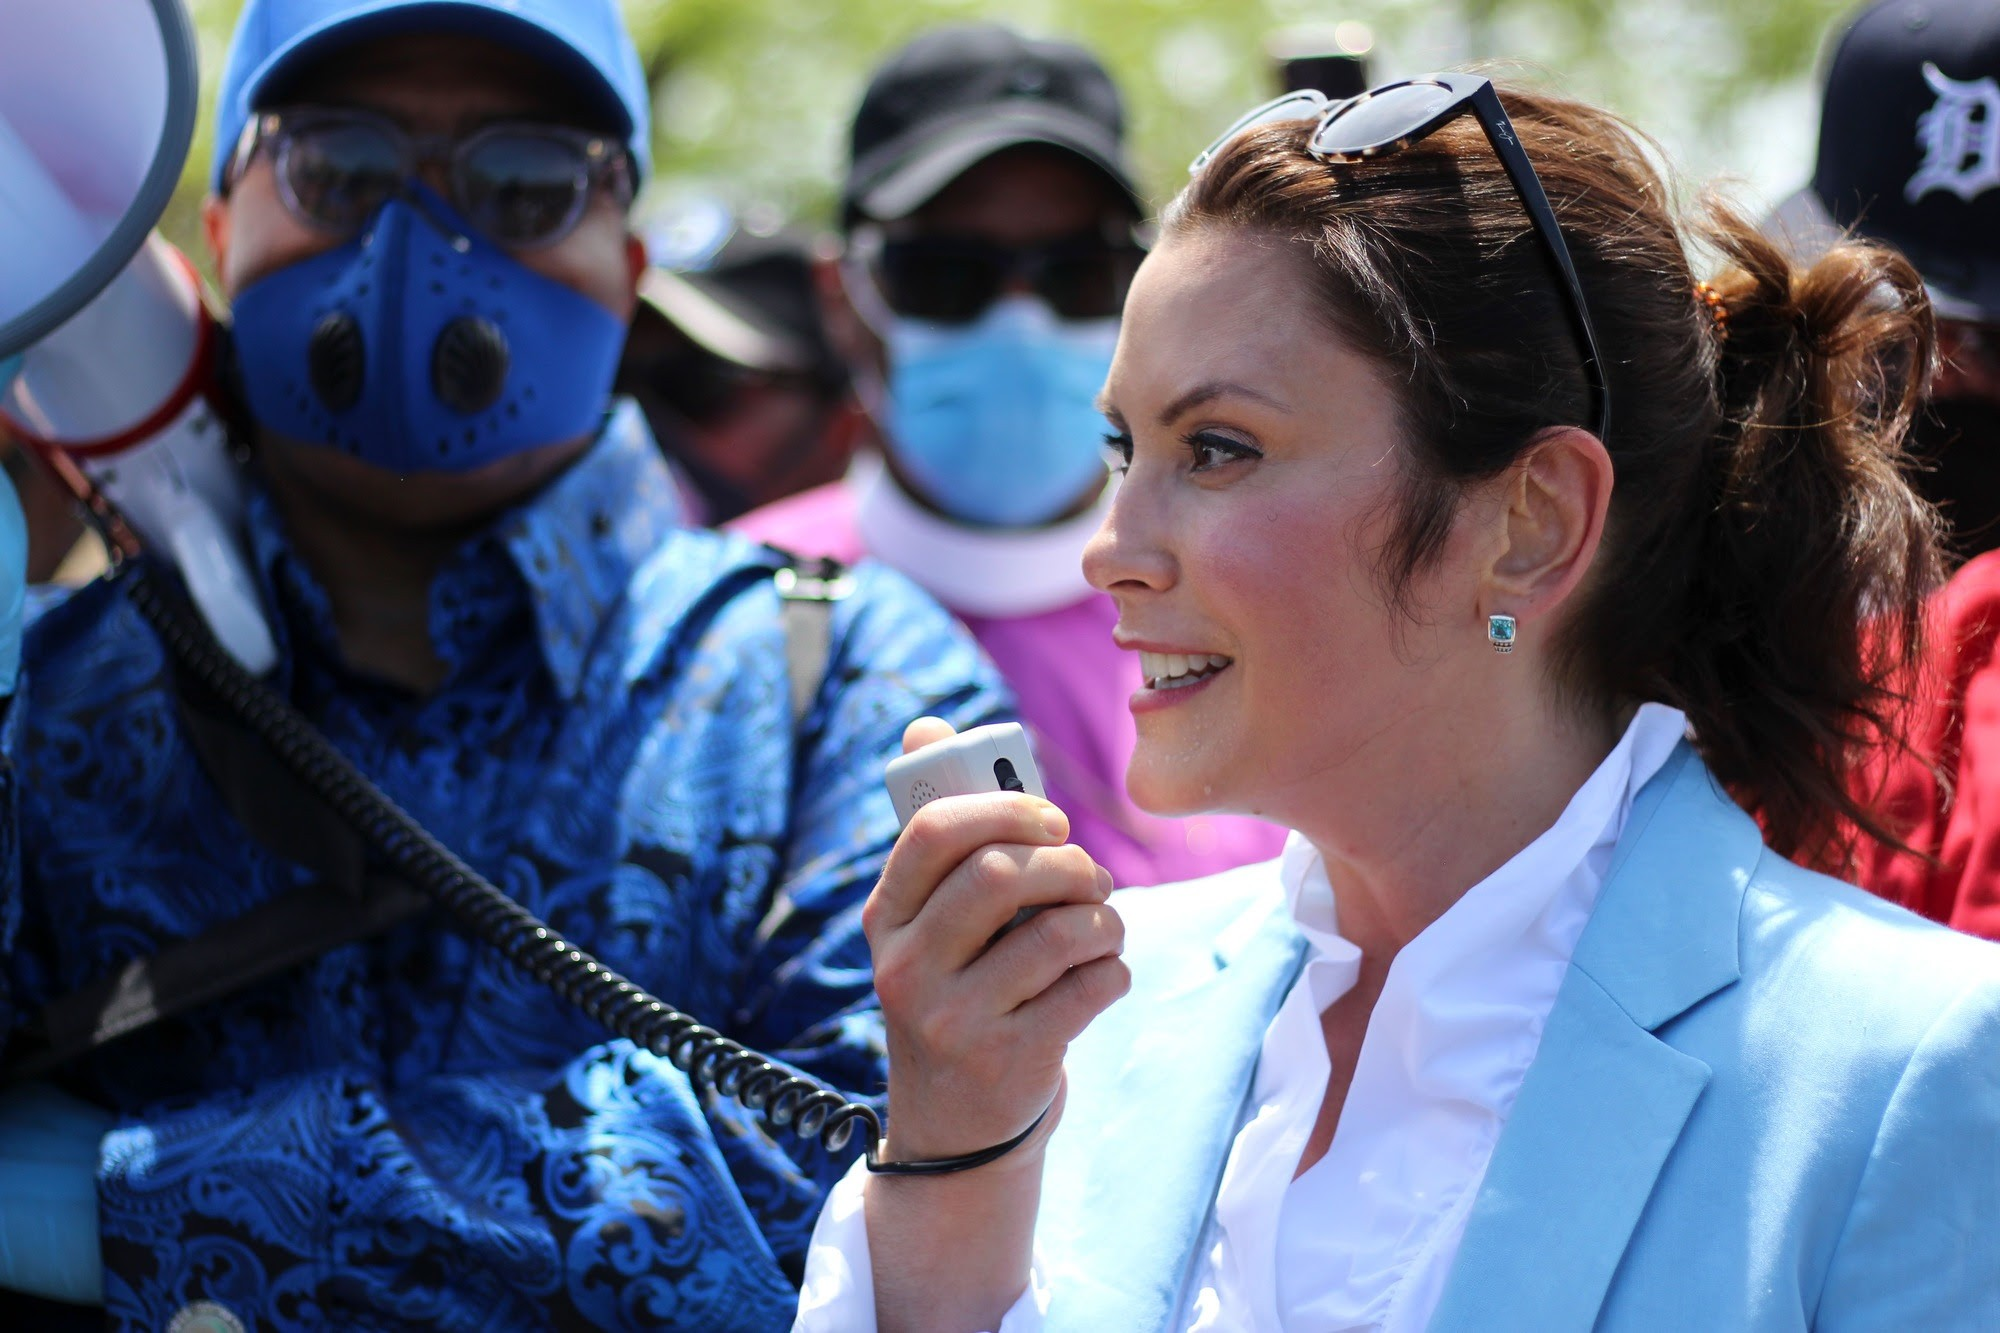 No Gov Whitmer Has Not Defunded The Michigan State Police News Hits